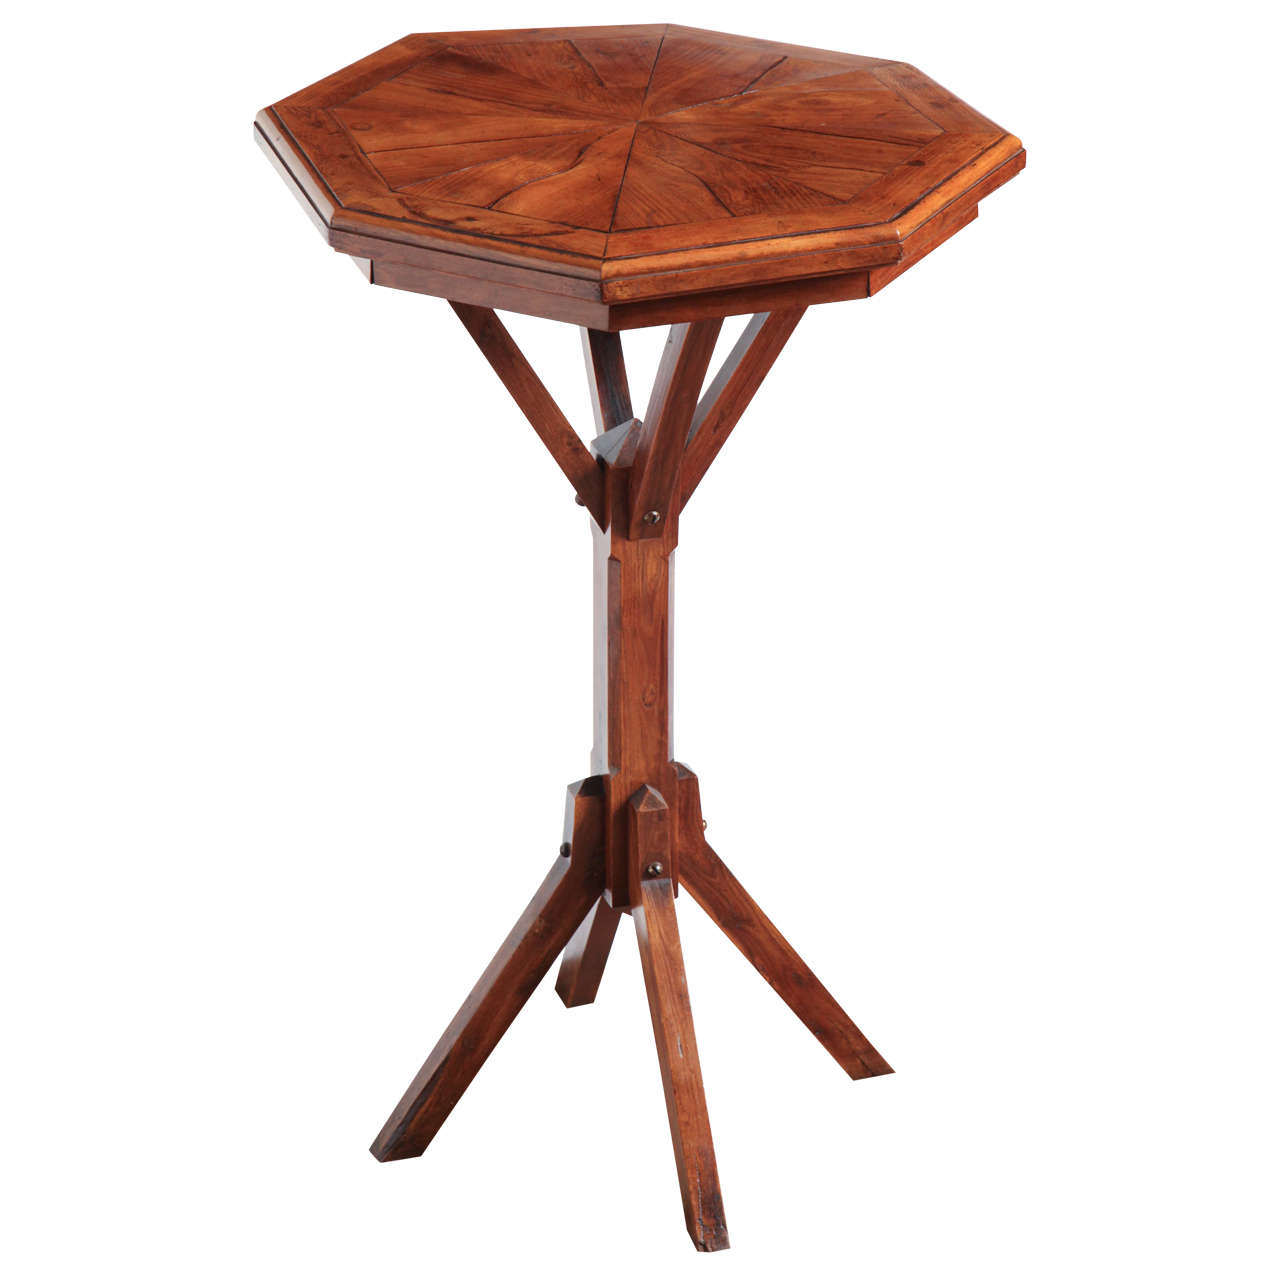 Late 19th Century Octagonal Fruitwood Table